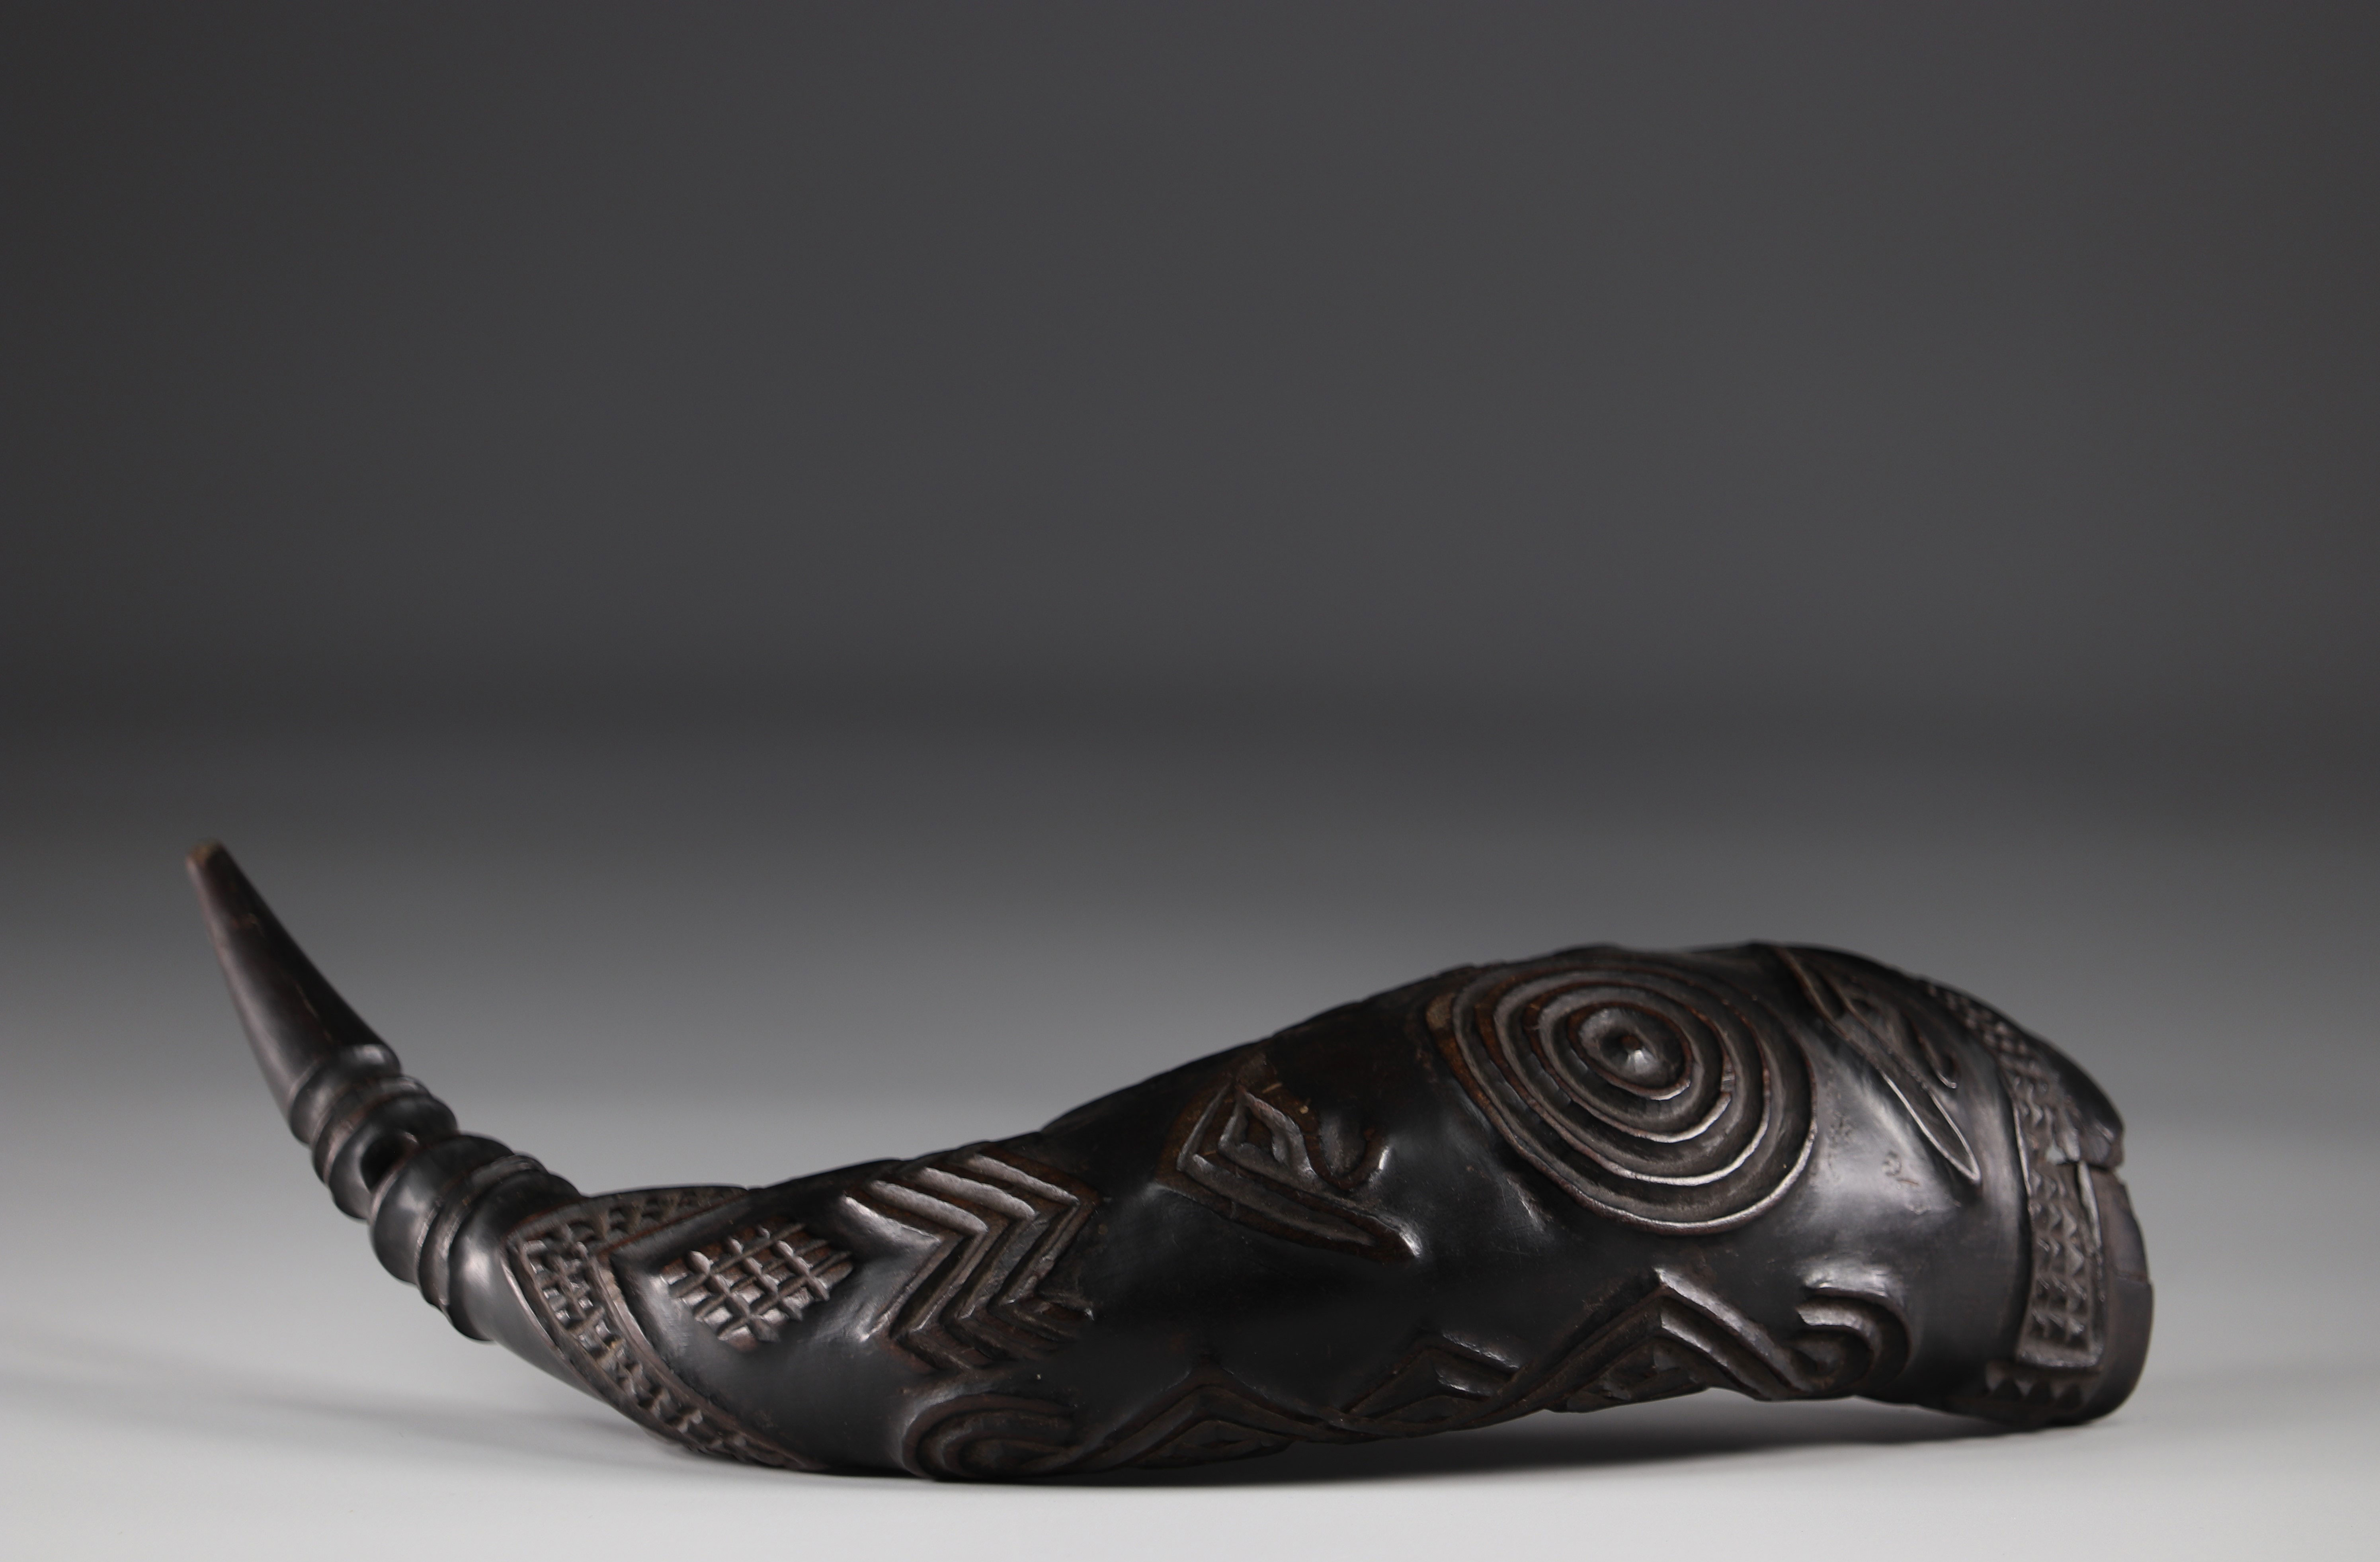 Horn carved with geometric Kuba shapes (attached photos 1916) - Image 5 of 5